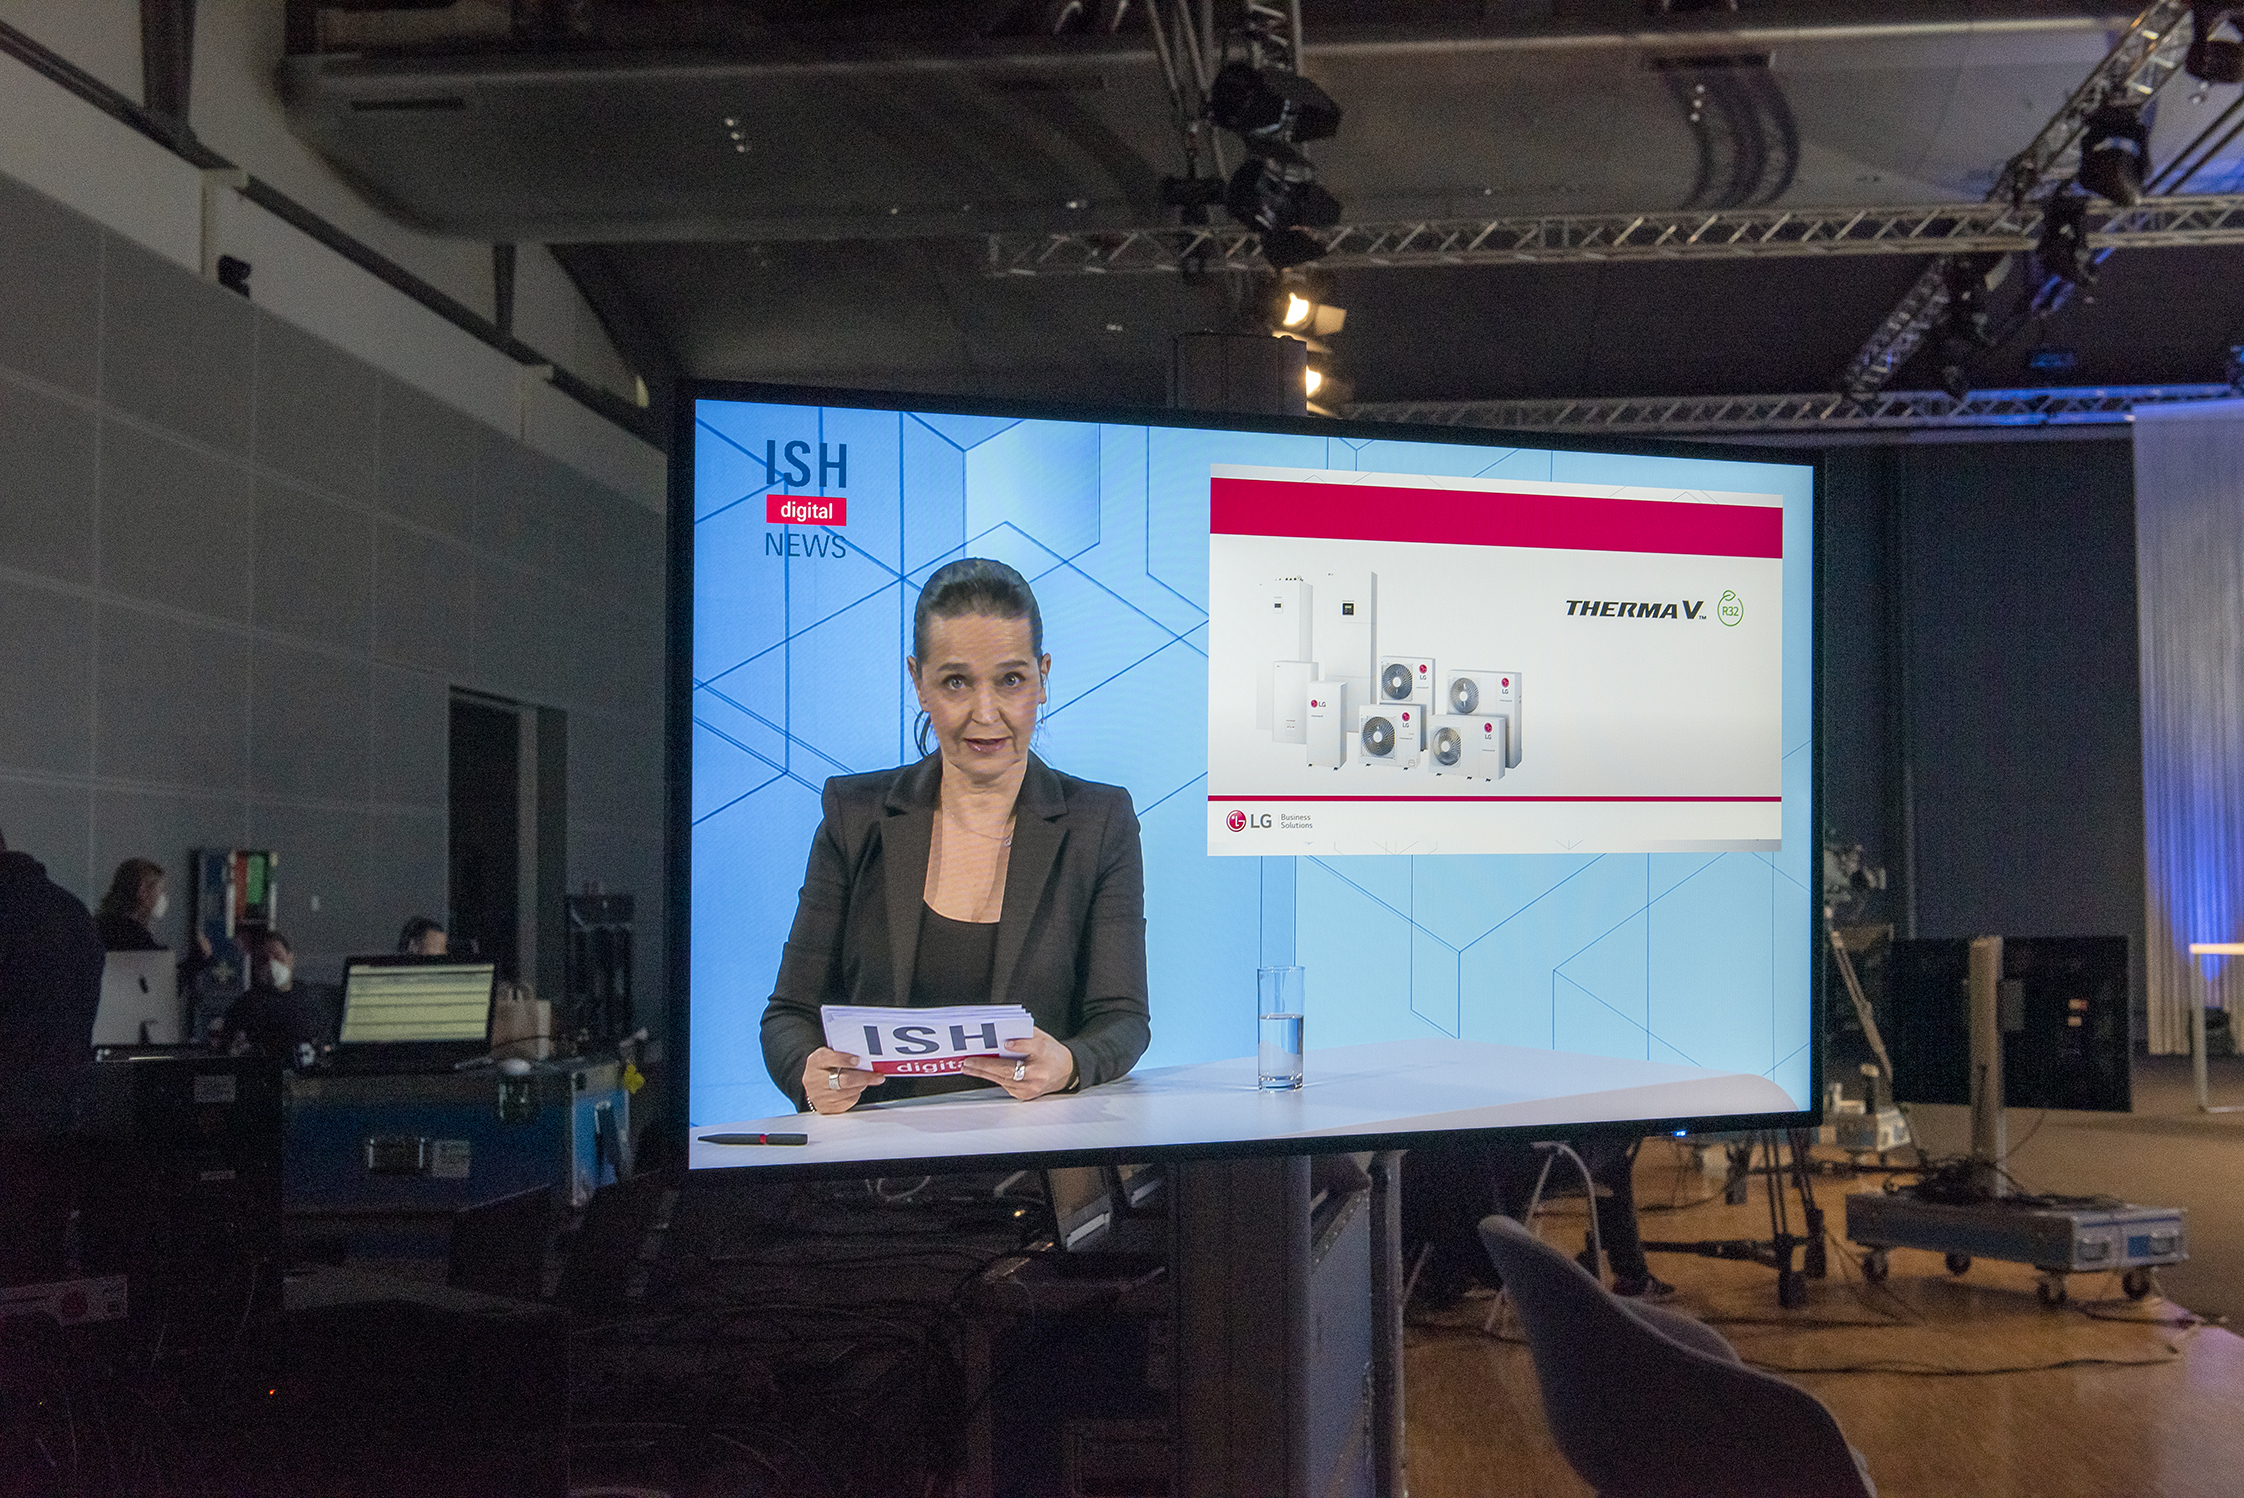 ISH digital 2021 / ISH TV News (Source: Messe Frankfurt Exhibition GmbH / Petra Welzel)